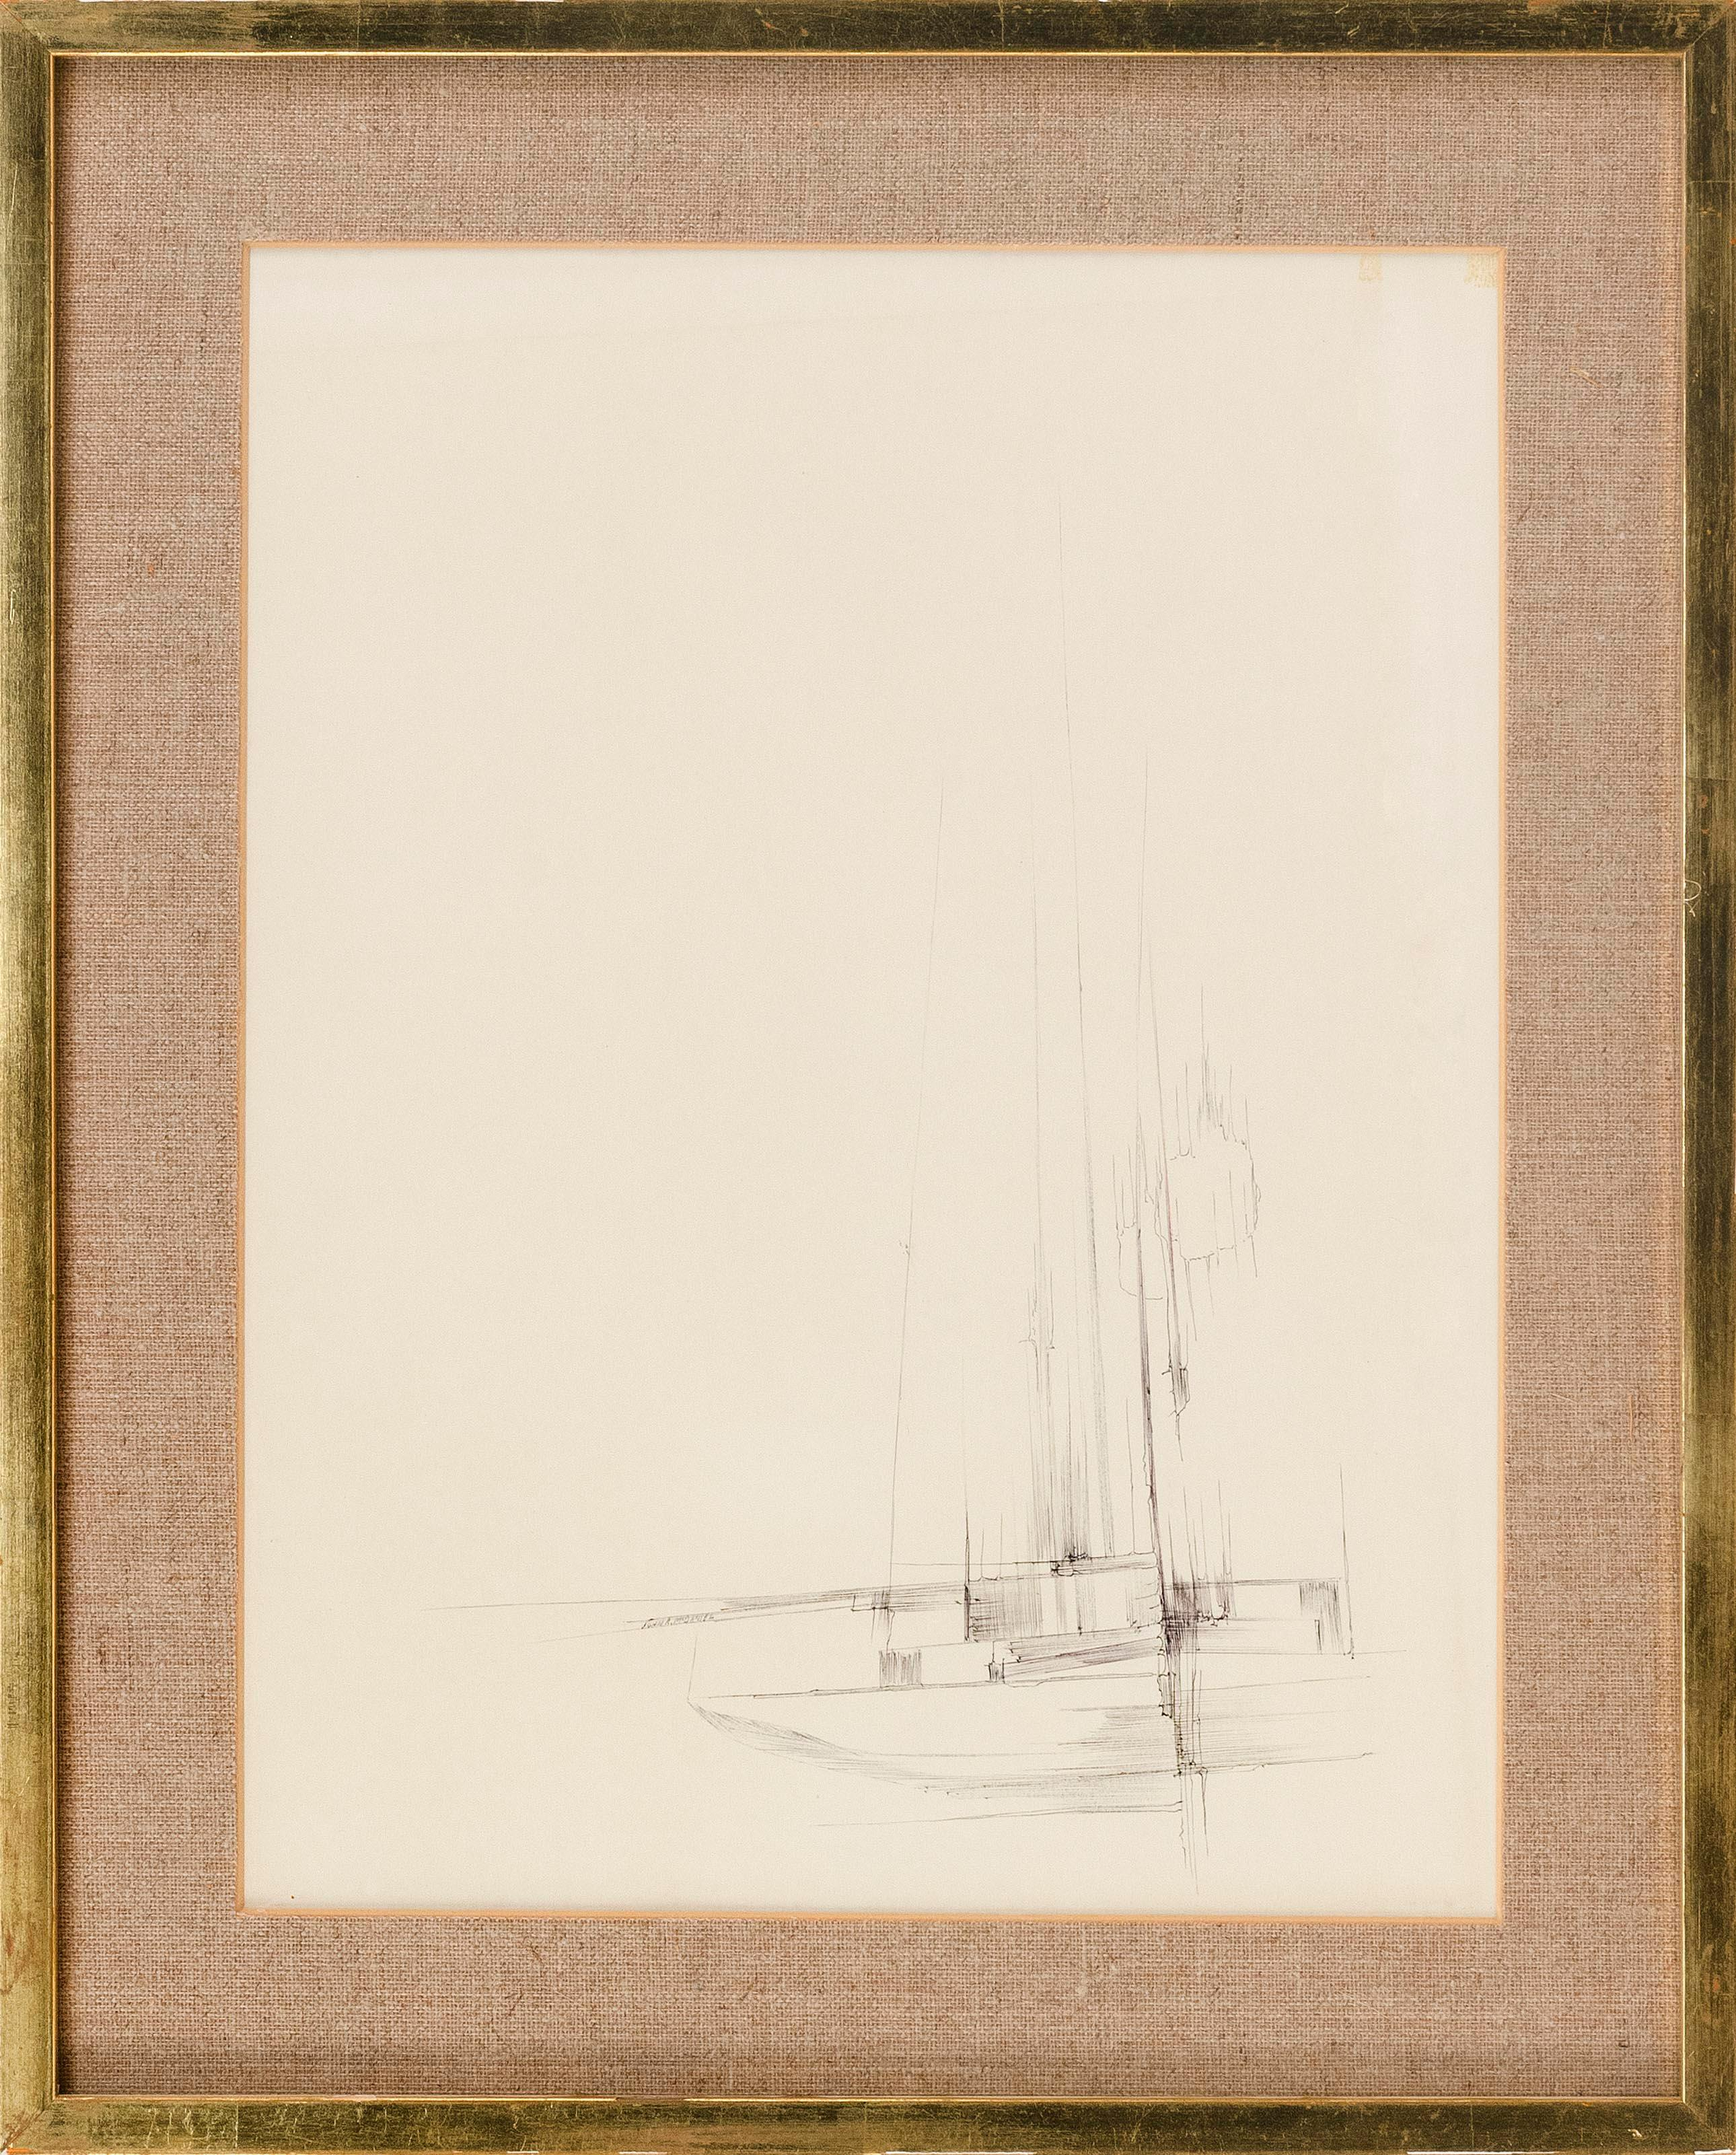 "JOHN R. MCDANIEL, United States, 20th Century, Sailboat., Brush and acrylic on paper, 16"" x 12"" sight. Framed 21"" x 17""."